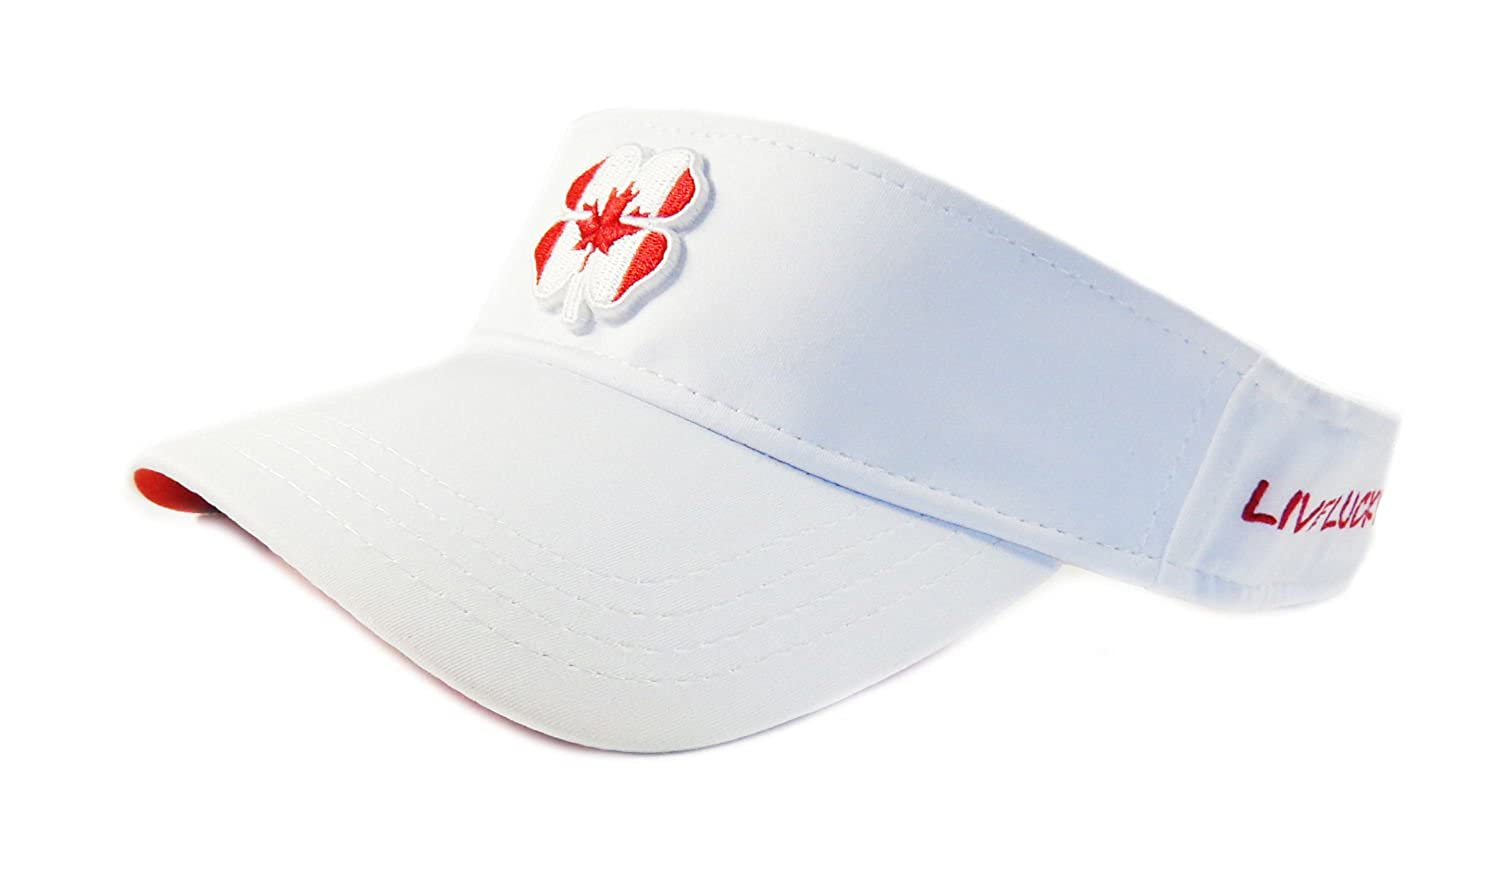 c7a6f7327 Amazon.com: Black Clover New Live Lucky BC Style Canada #1 White/Red ...